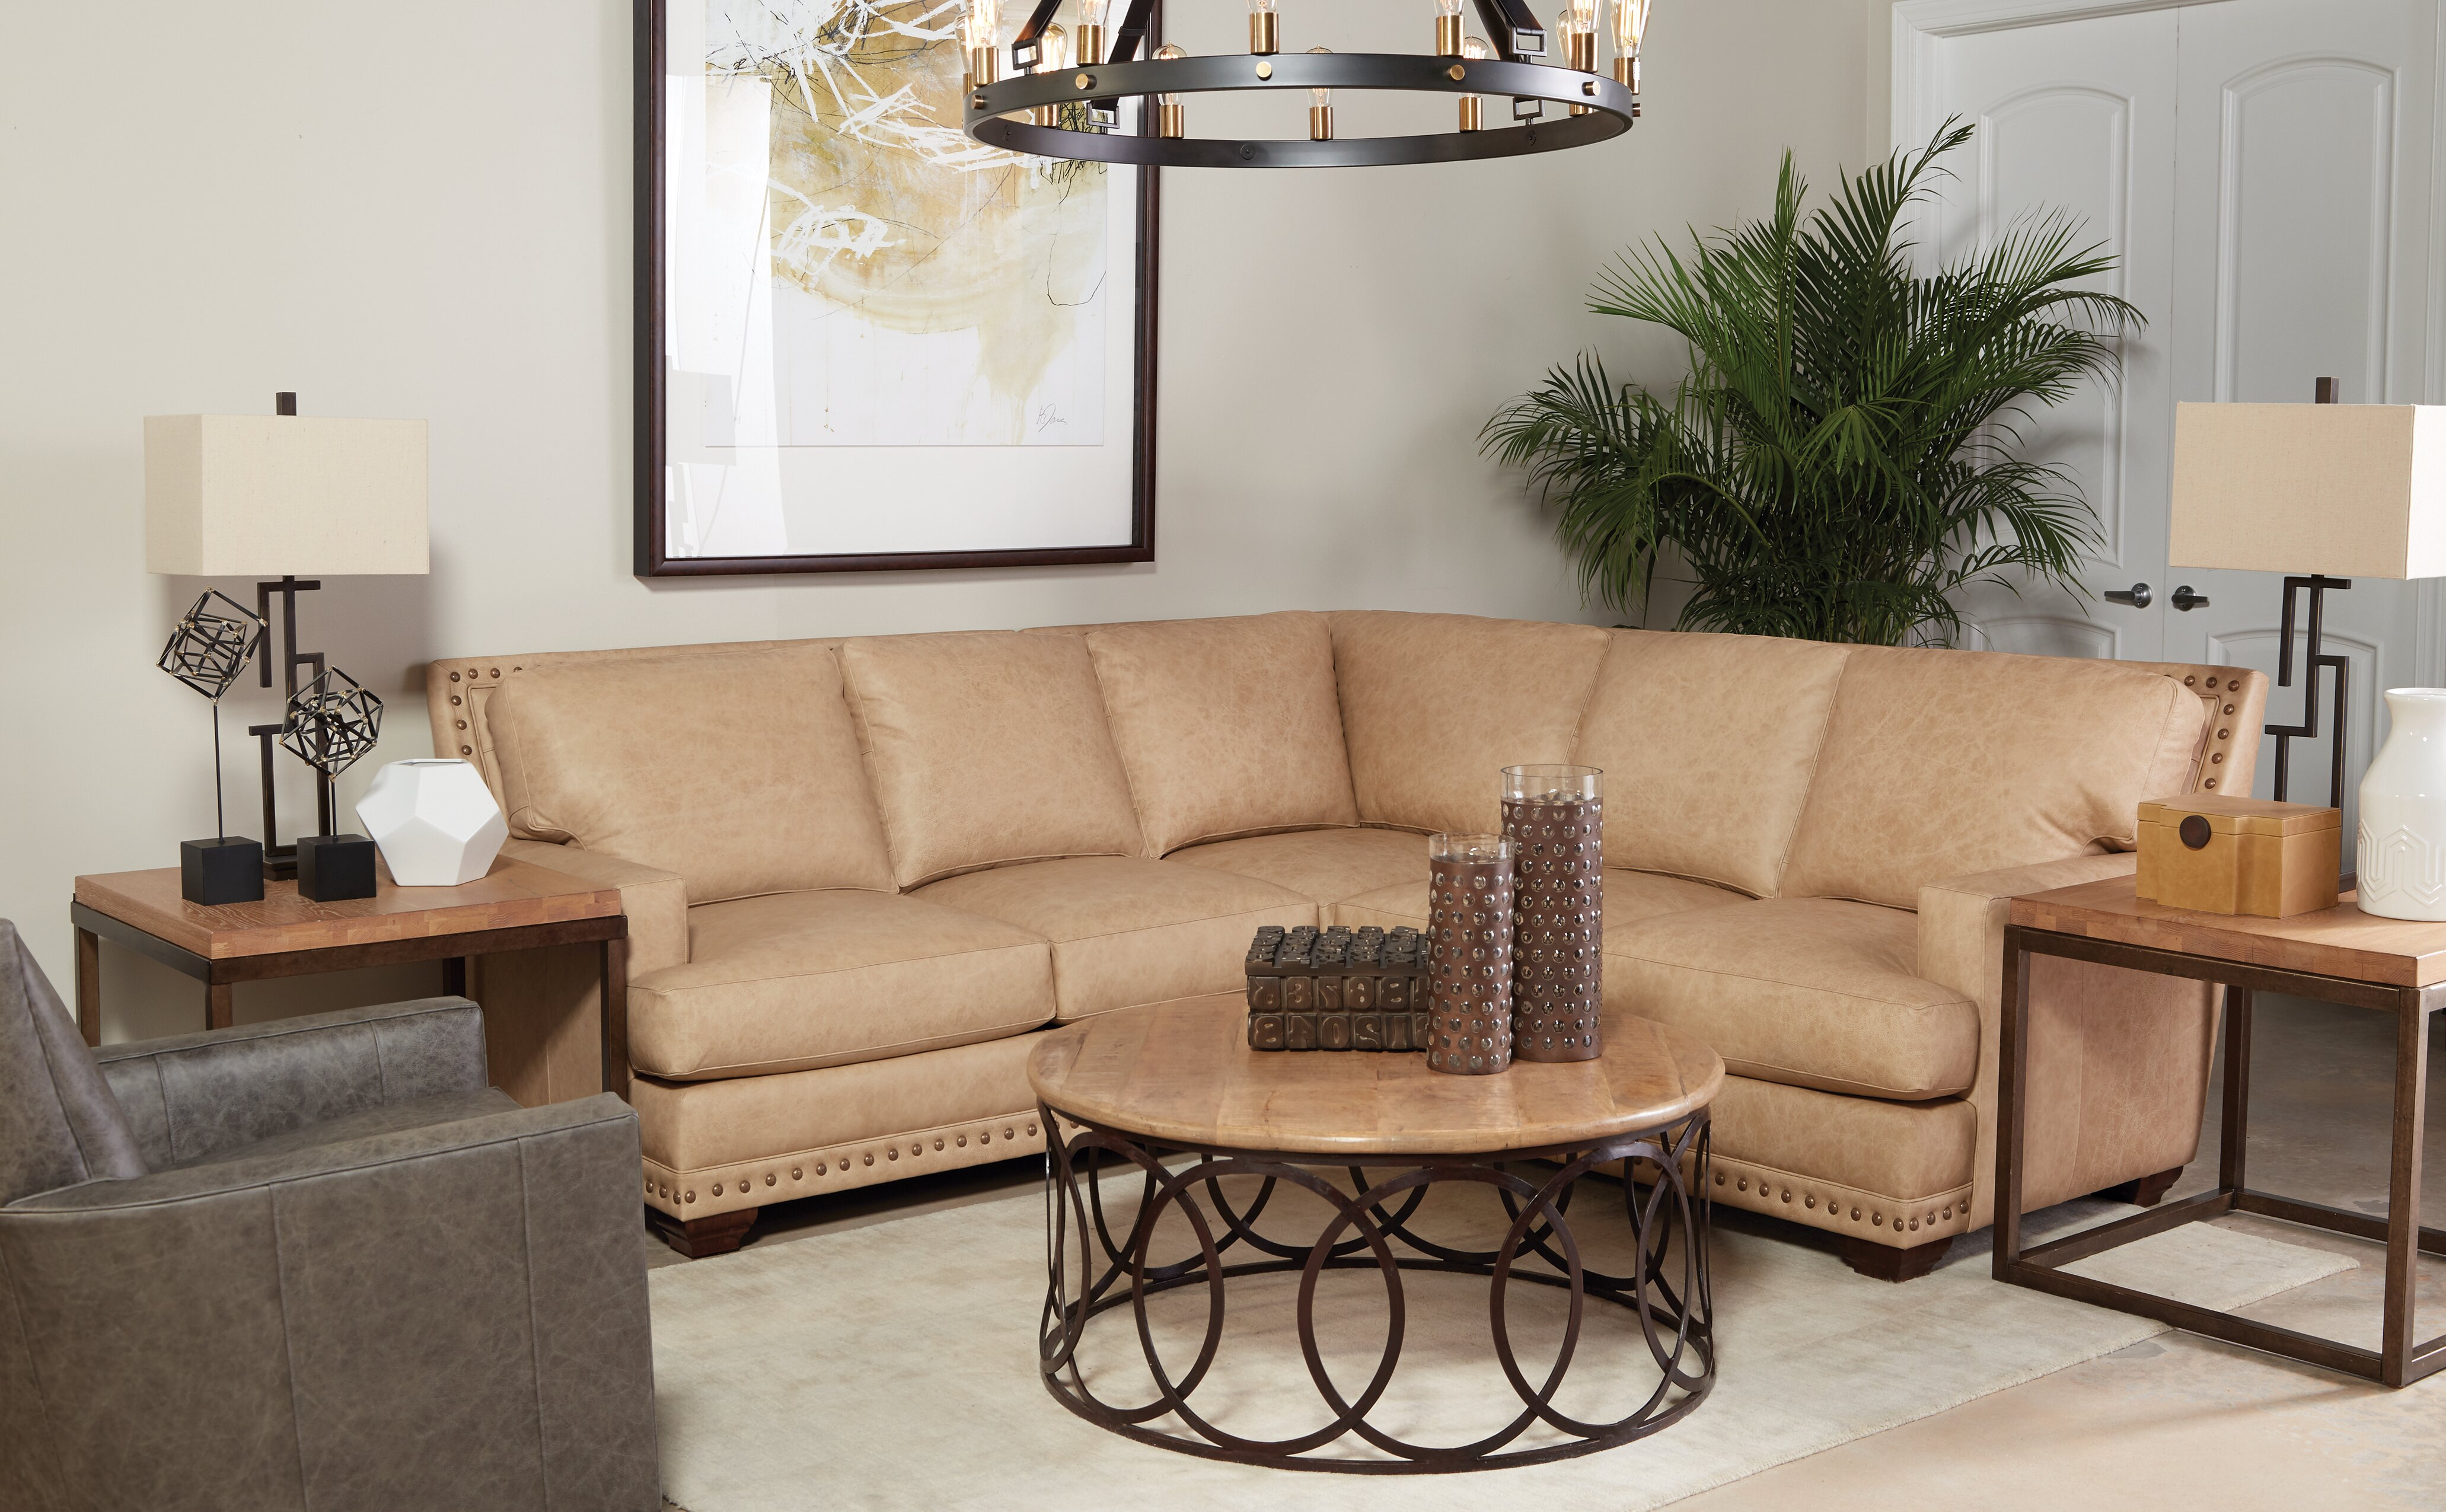 Sienna 155 Wide Genuine Leather Symmetrical Corner Sectional Birch Lane